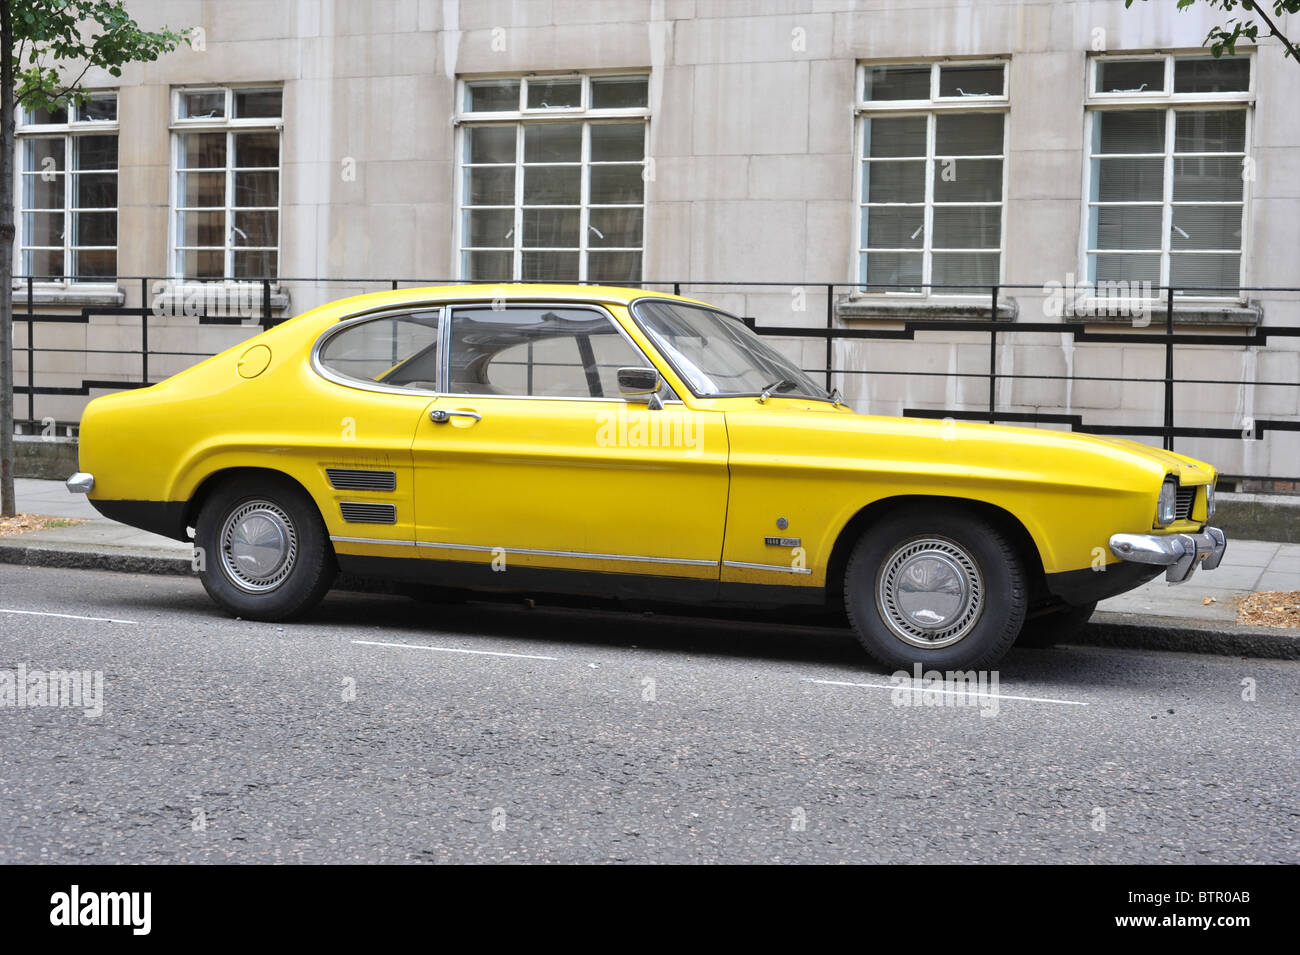 yellow ford capri stock photo royalty free image 32467299 alamy. Black Bedroom Furniture Sets. Home Design Ideas